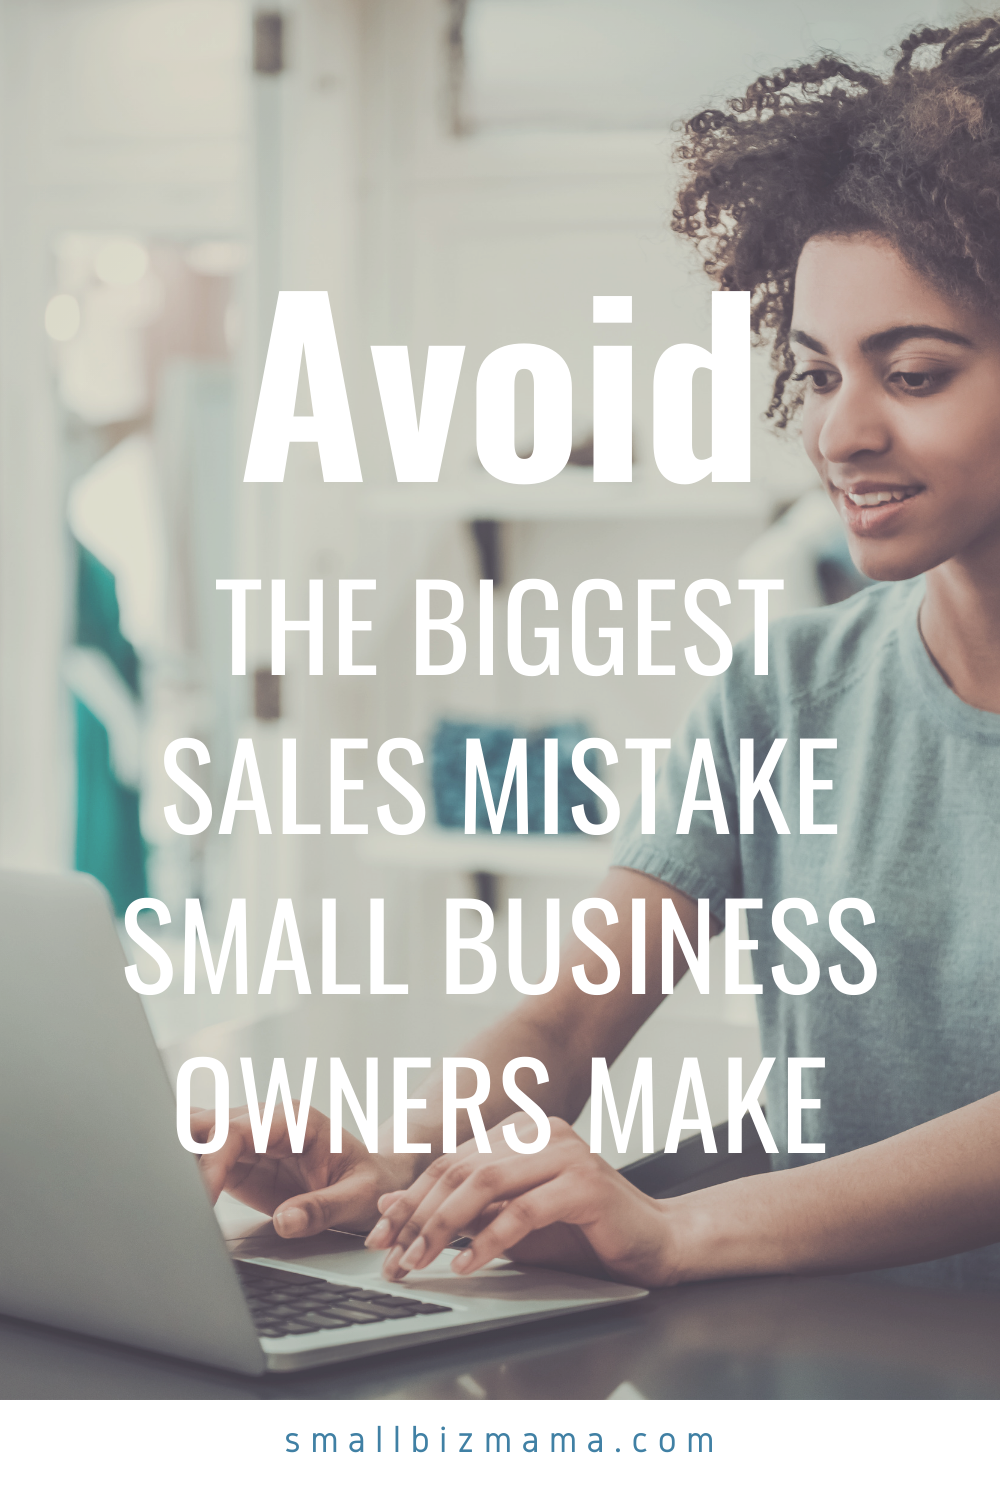 Avoid the biggest sales mistake small business owner make